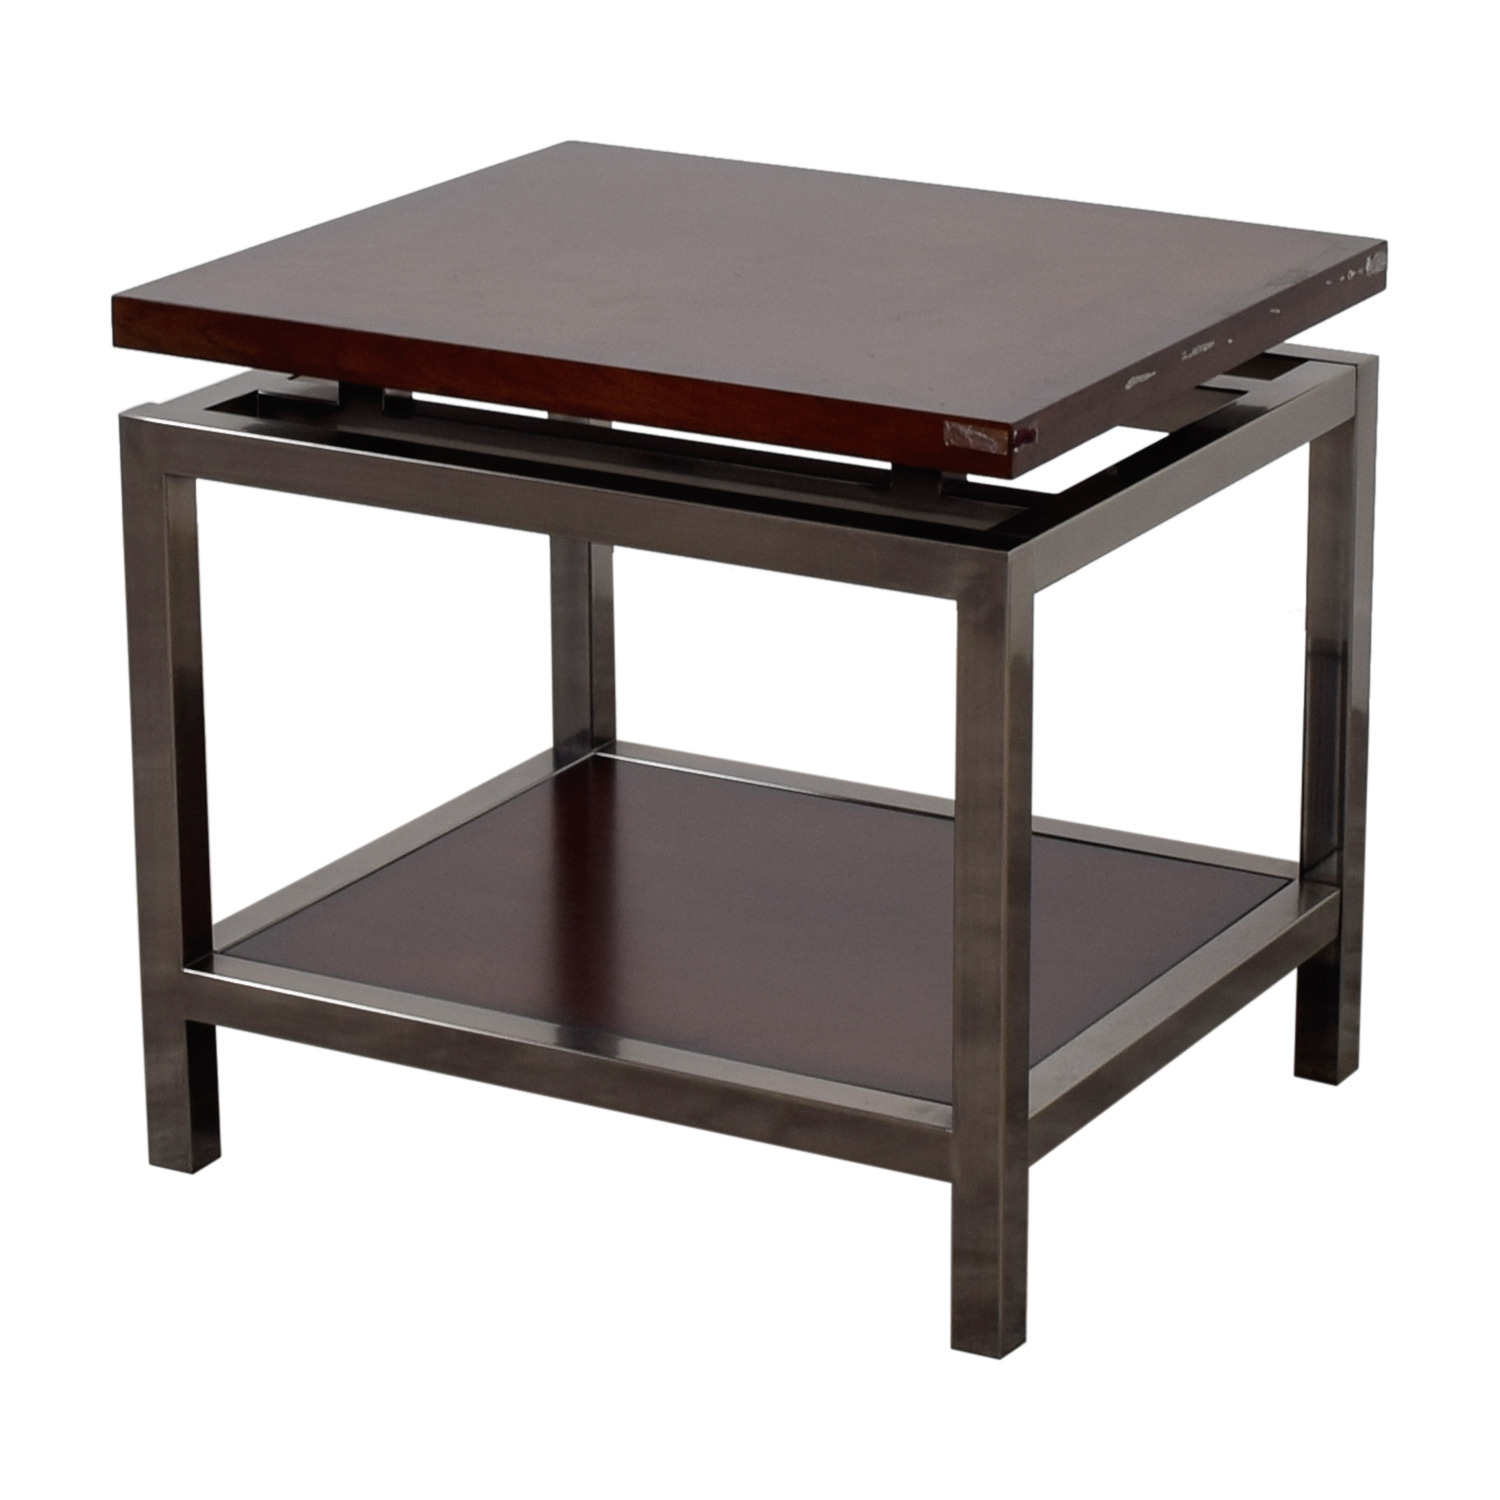 Raymour & Flanagan Raymour & Flanagan Wood and Chrome Side table coupon